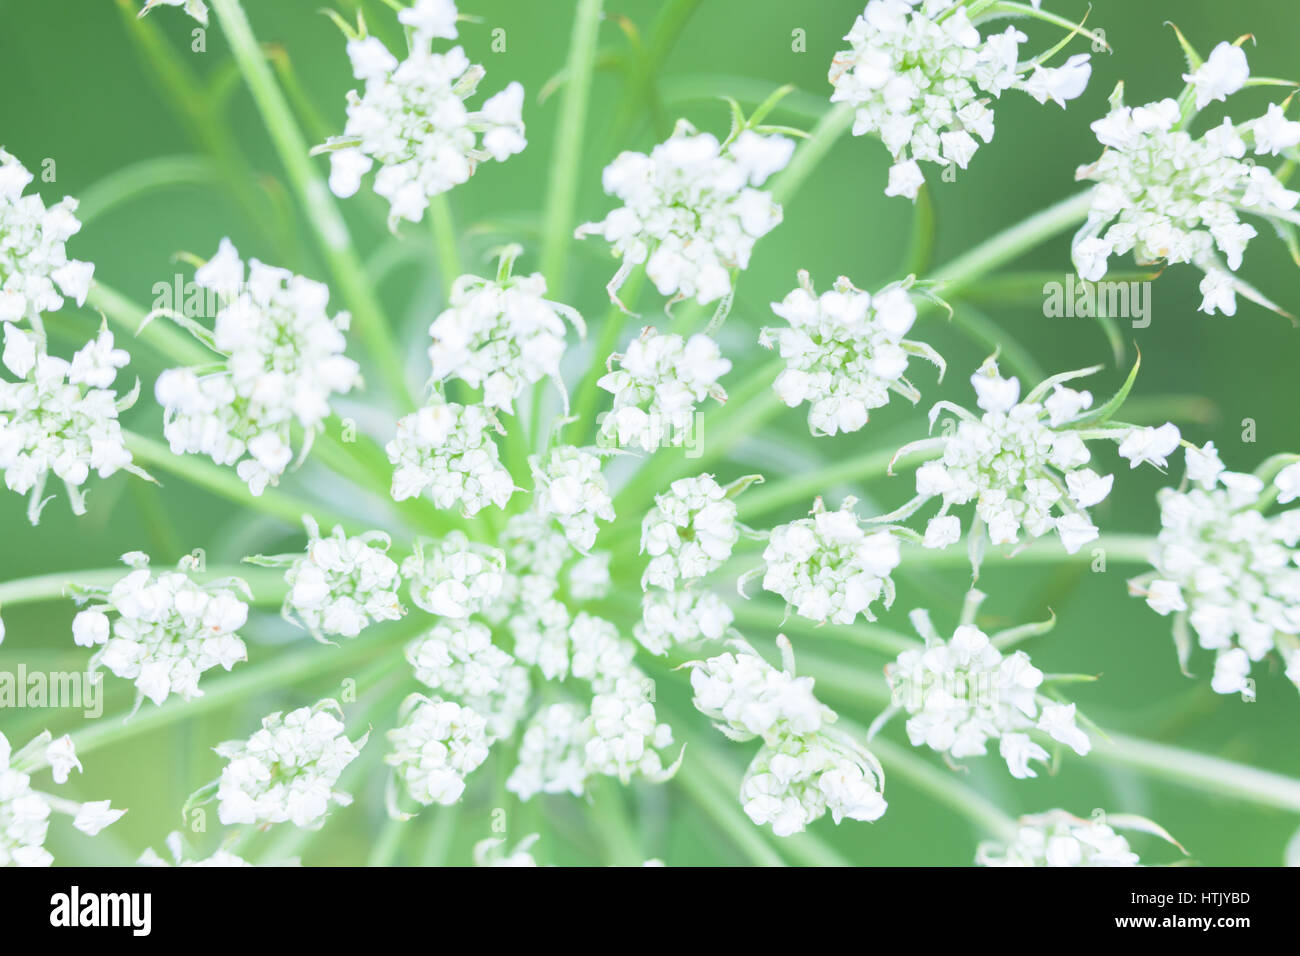 Inflorescence of white flowers plants from the family Apiaceae or Umbelliferae Stock Photo